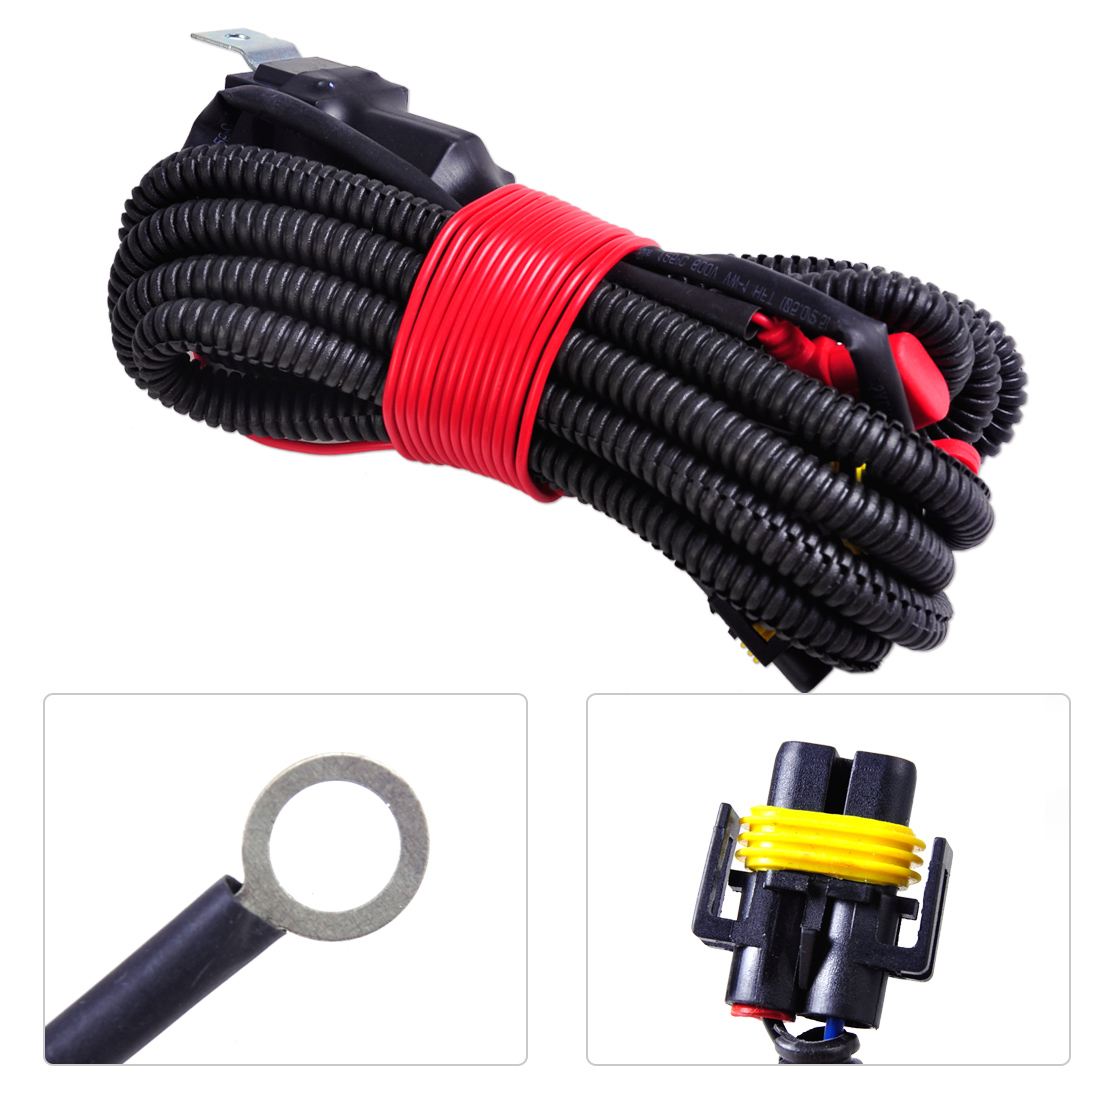 Ford Focus Wiring Harness Kits Library Fog Light Kit Beler New Arrival H11 Female Adapter Sockets Wire Connector For Lamp